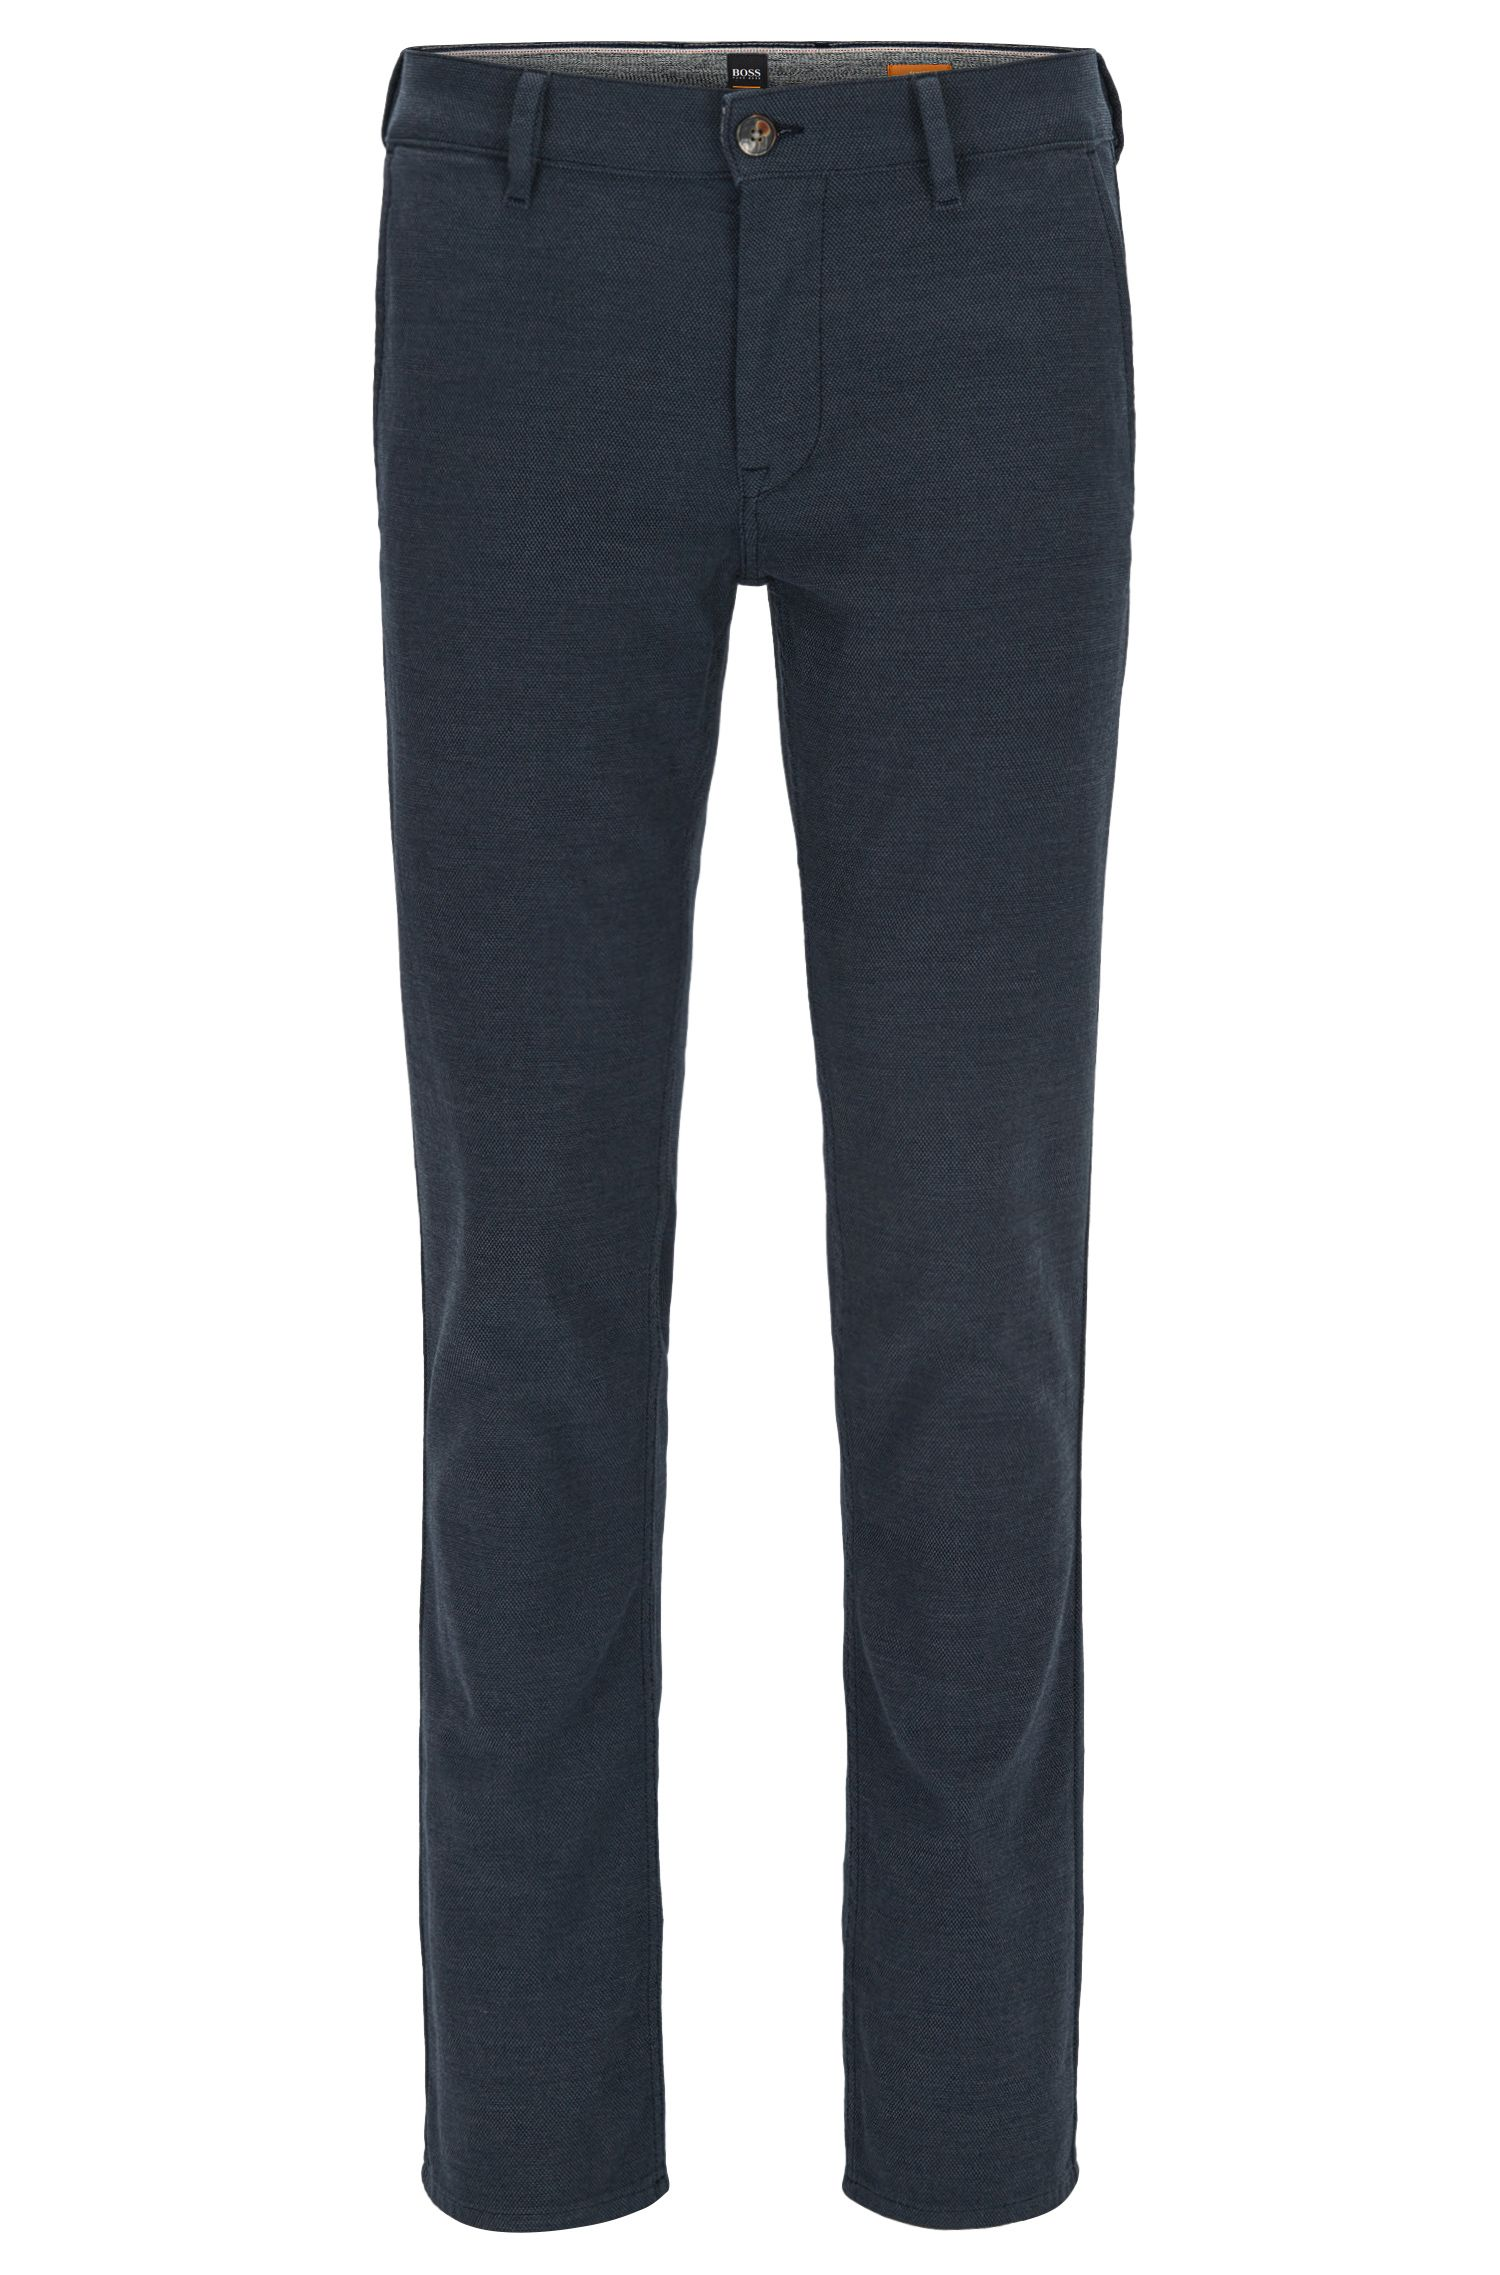 Slim-fit micro-pattern trousers in a stretch cotton blend